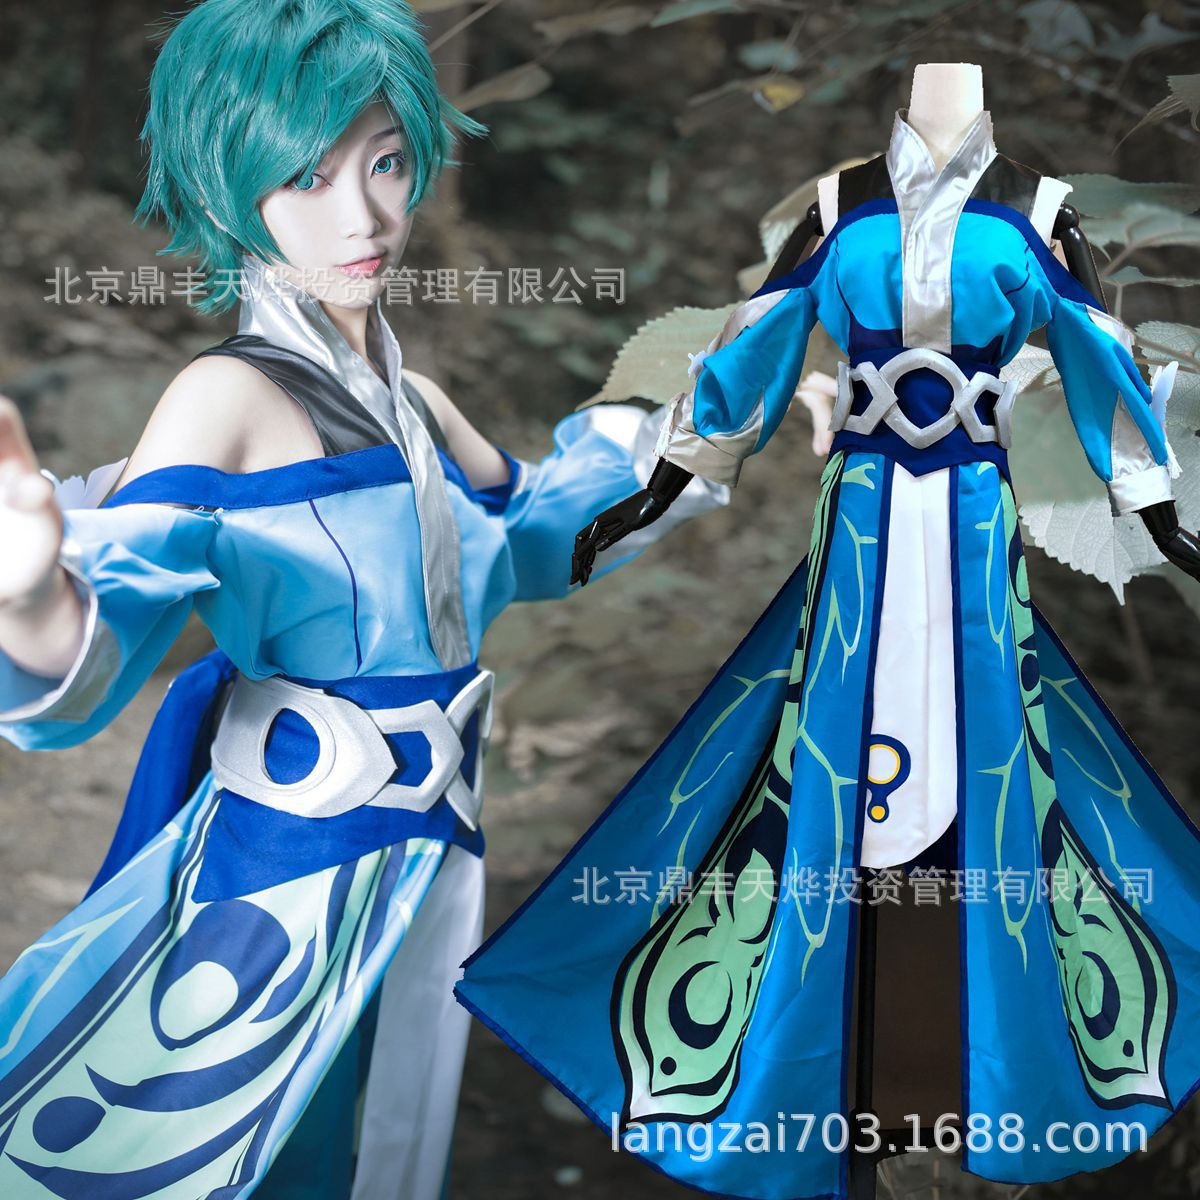 Hot Game Arena of Valor 5v5 Arena Game Zhuang Zhou Cosplay Costume Fantasy Classical Chinese Clothing Top+Pants+Sleeves